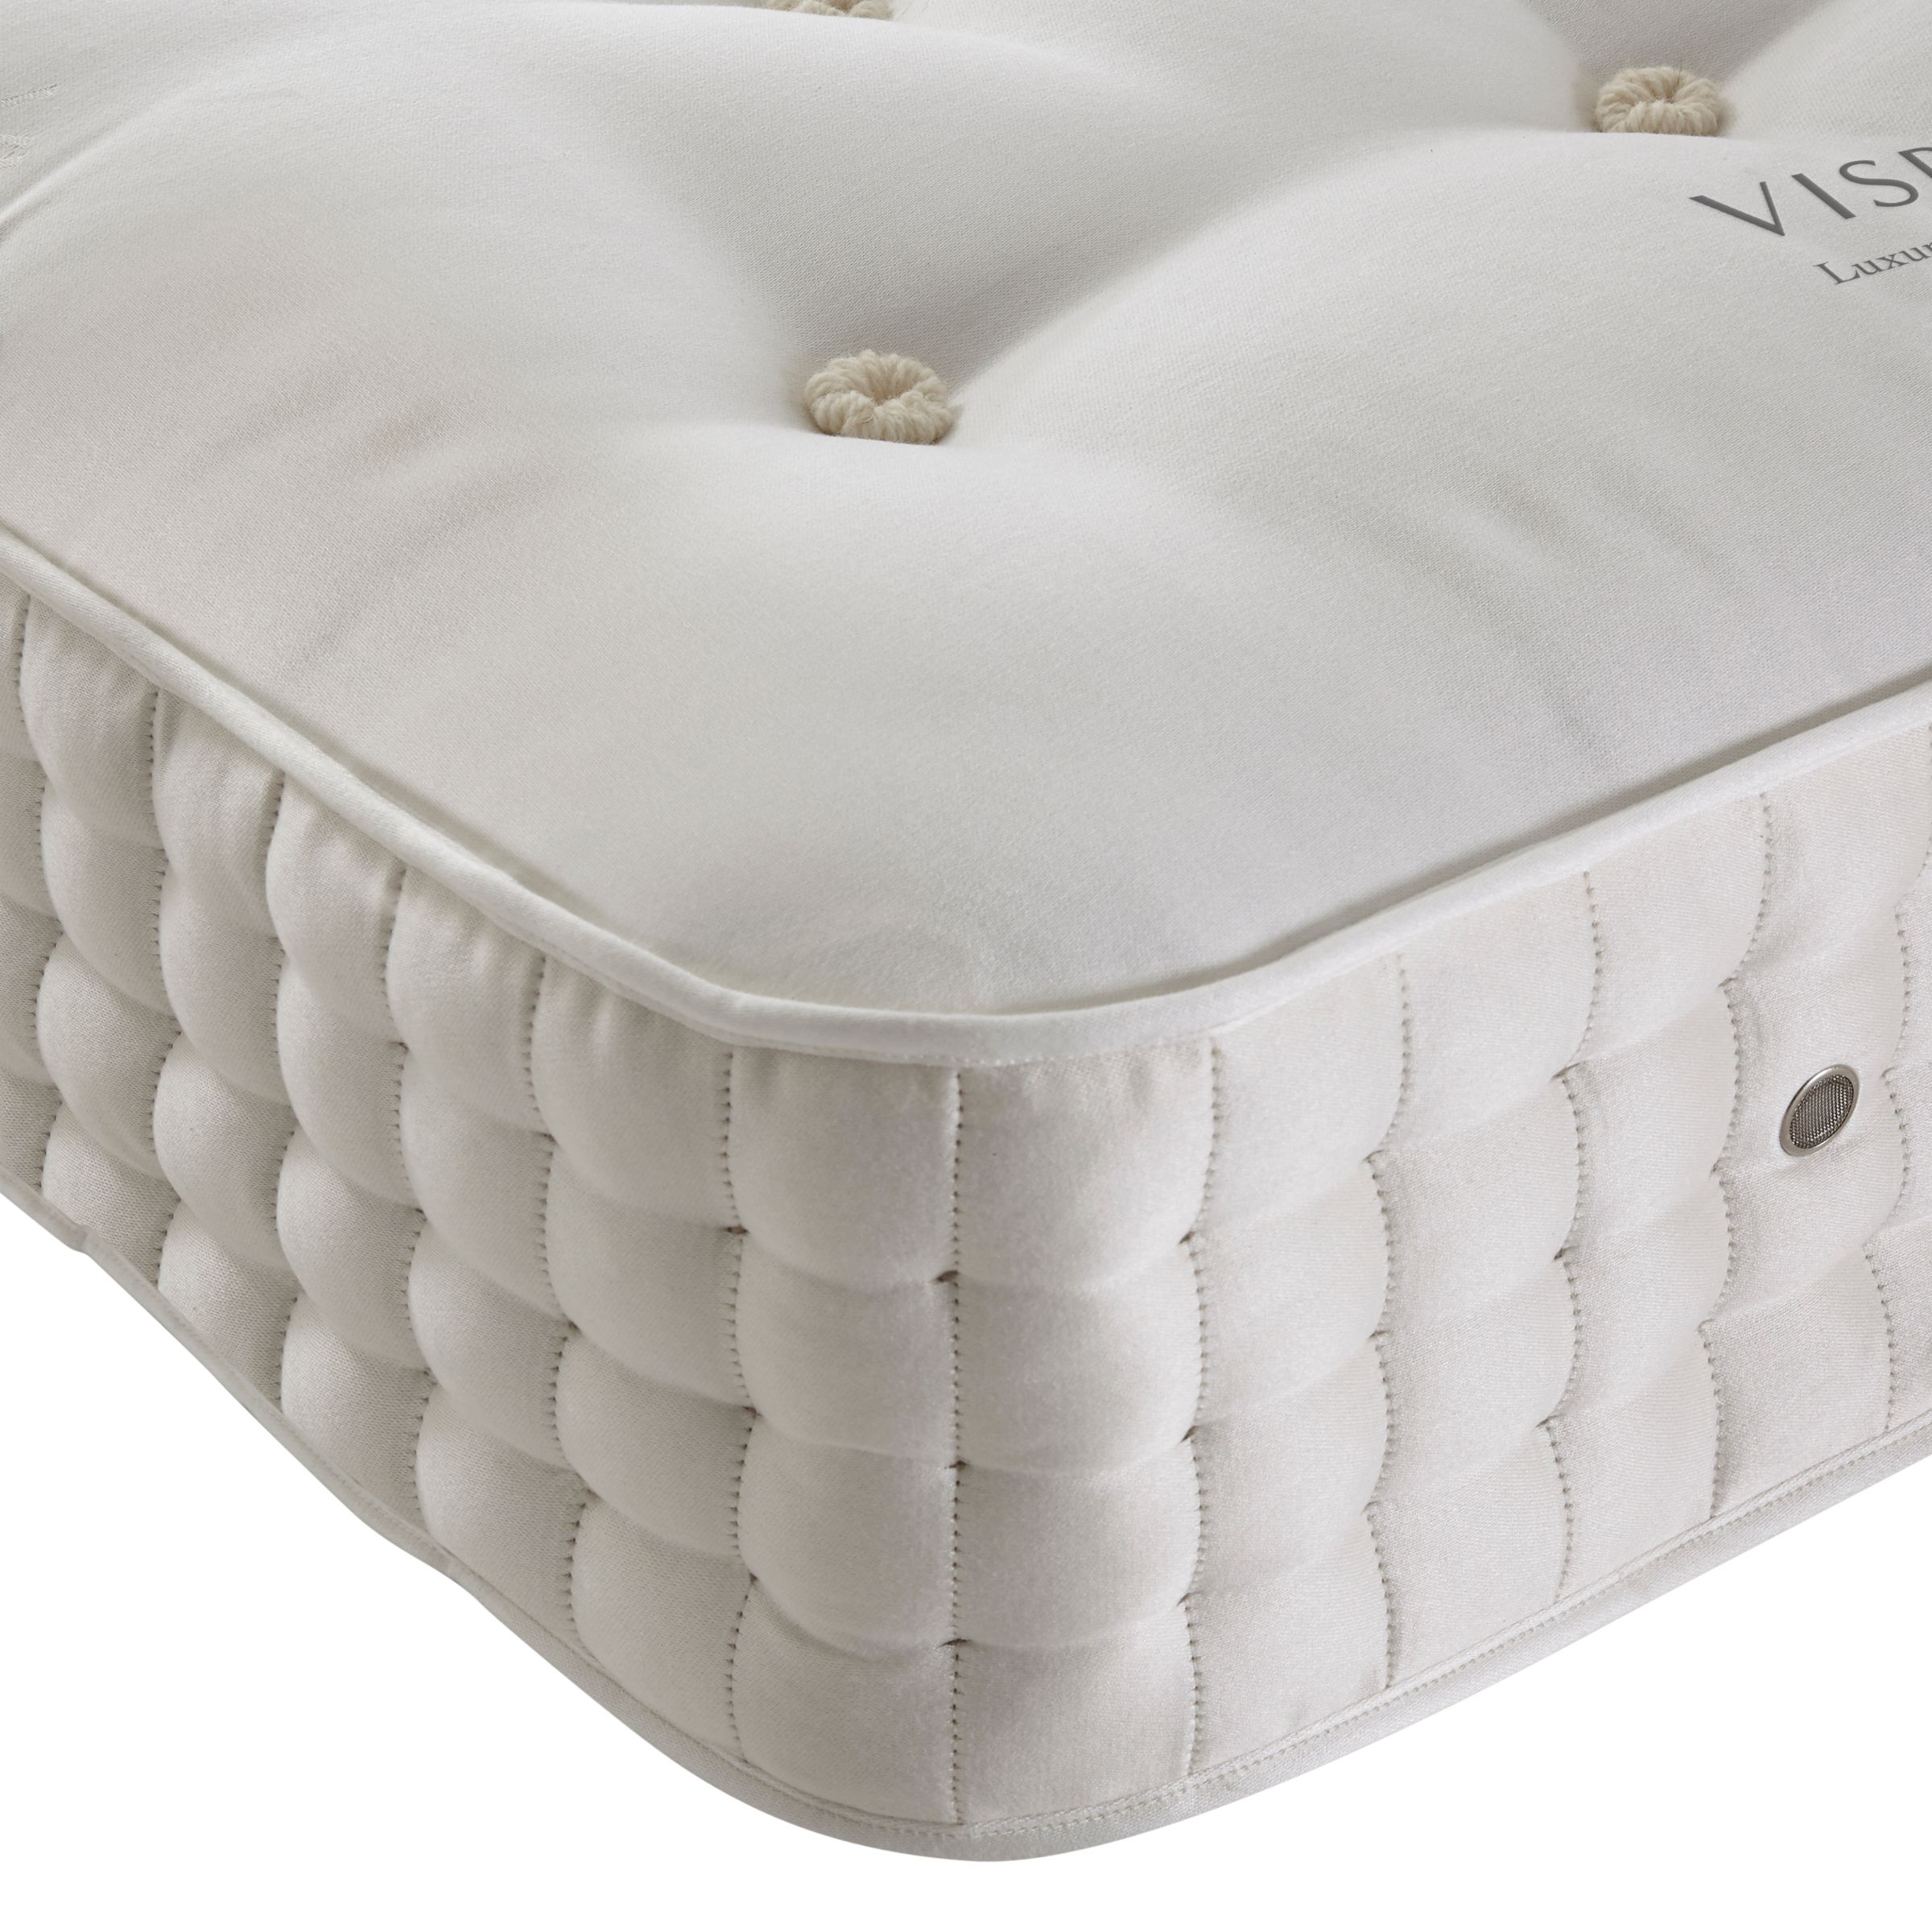 Vi-Spring Salcombe Superb Zip Link Mattress, Emperor